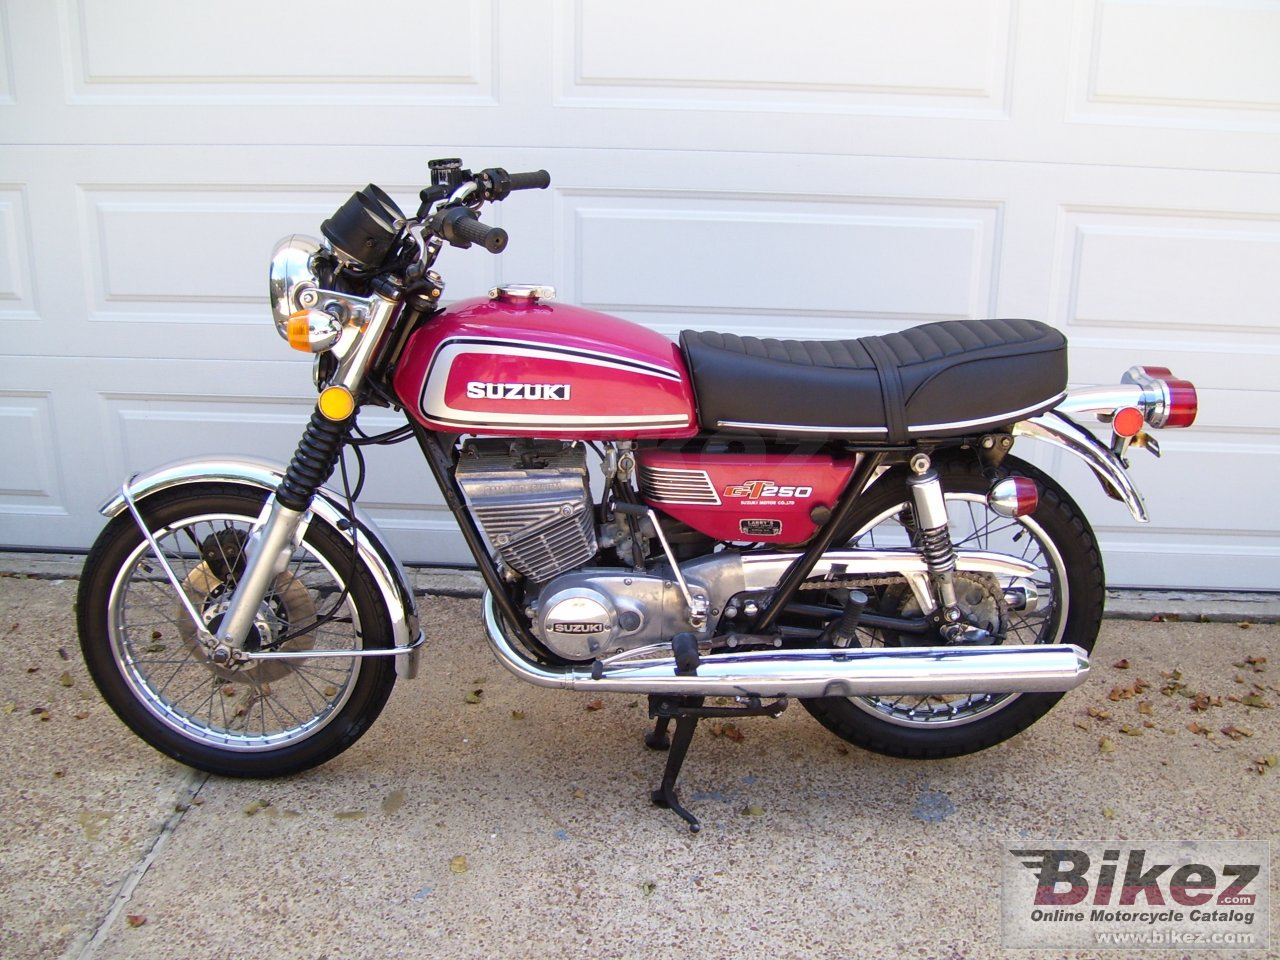 Big ike 1974 titled as 1973 gt 250 picture and wallpaper from Bikez.com